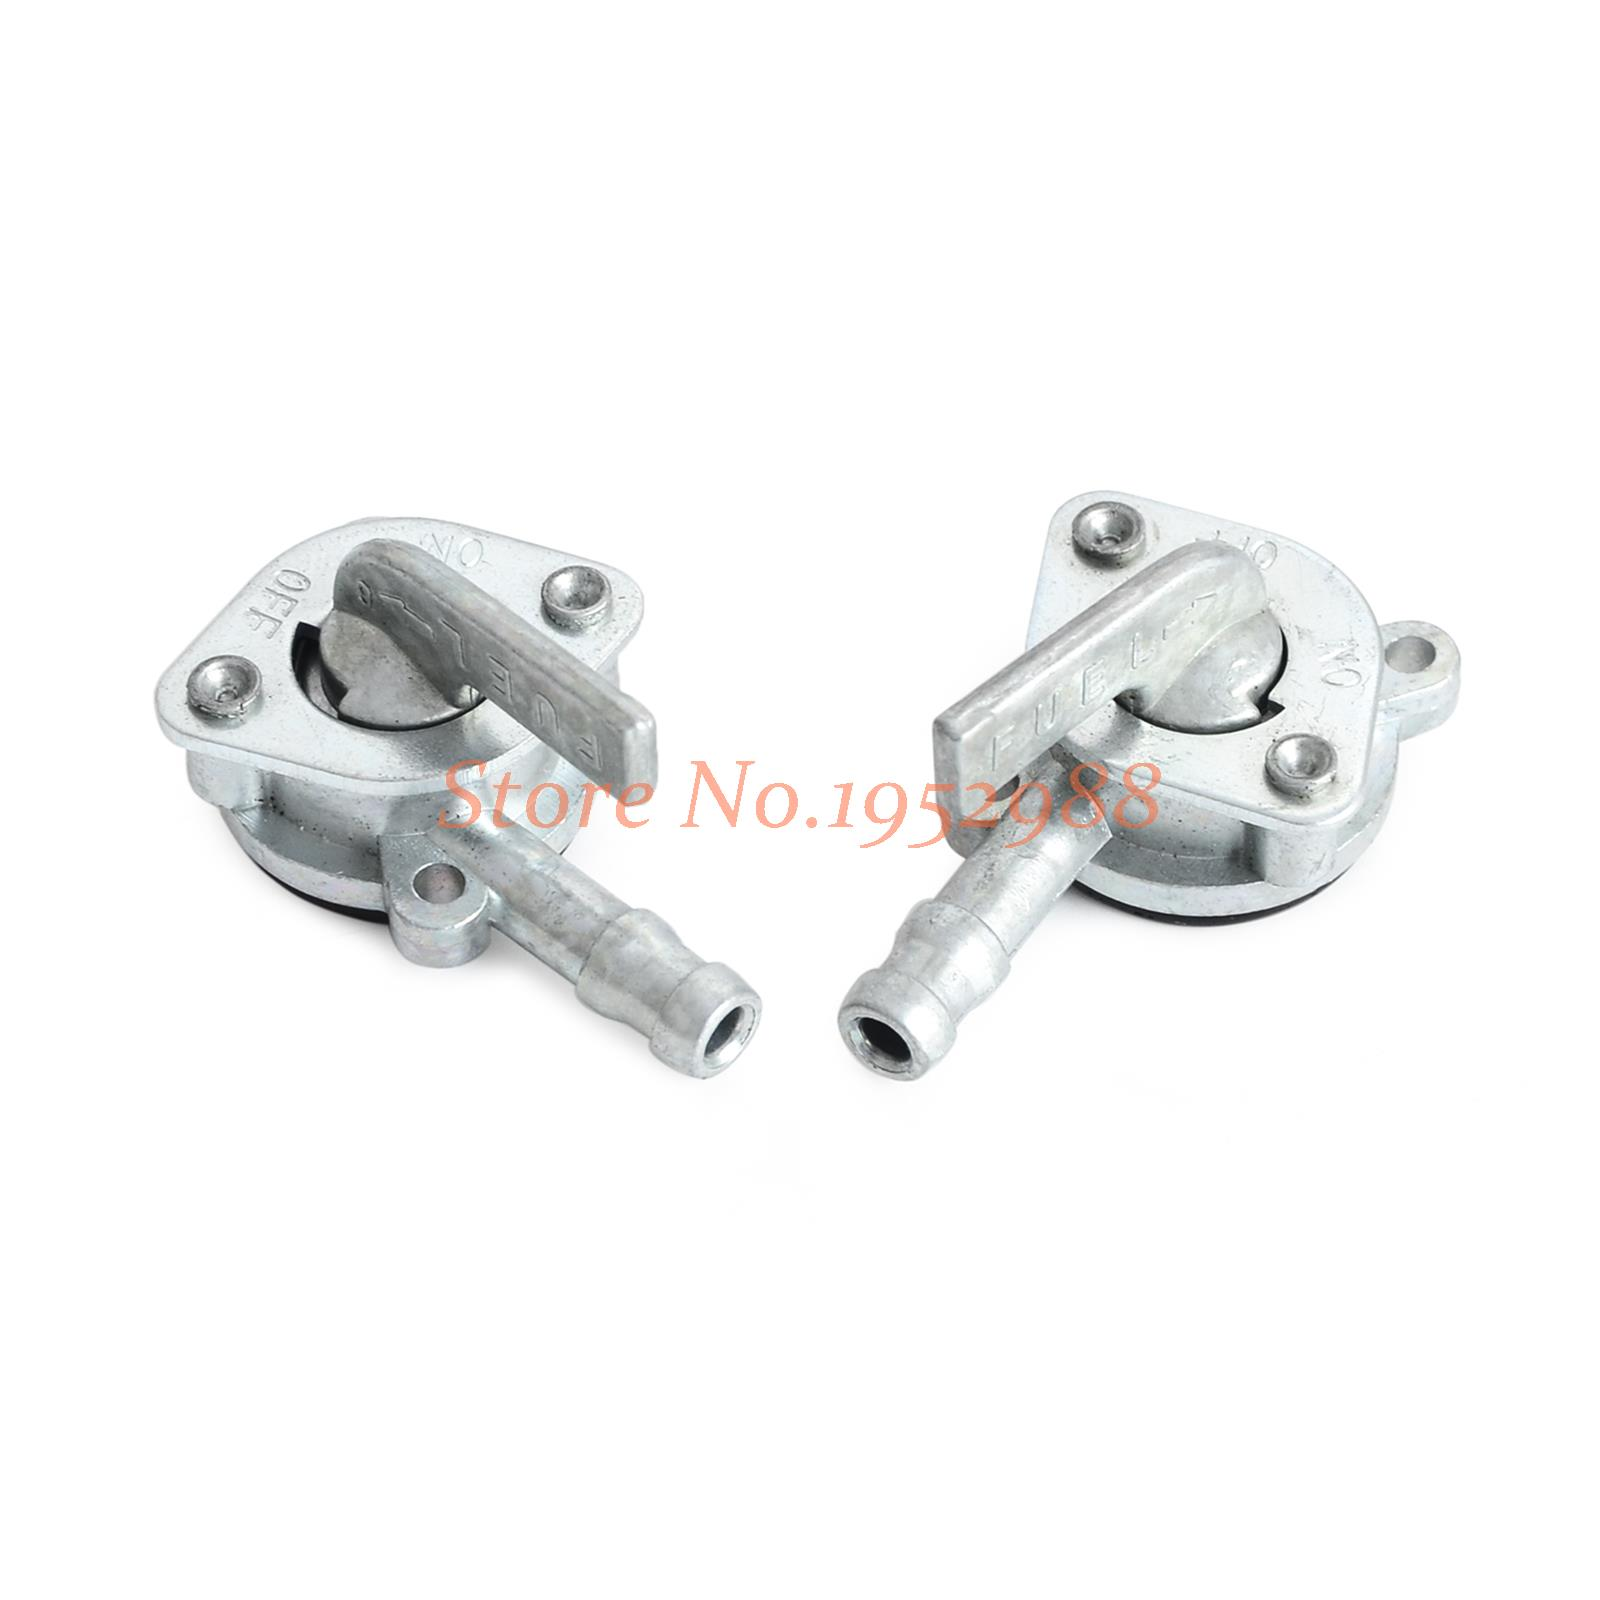 motocycle on off gas switch fuel valve petcock for honda. Black Bedroom Furniture Sets. Home Design Ideas